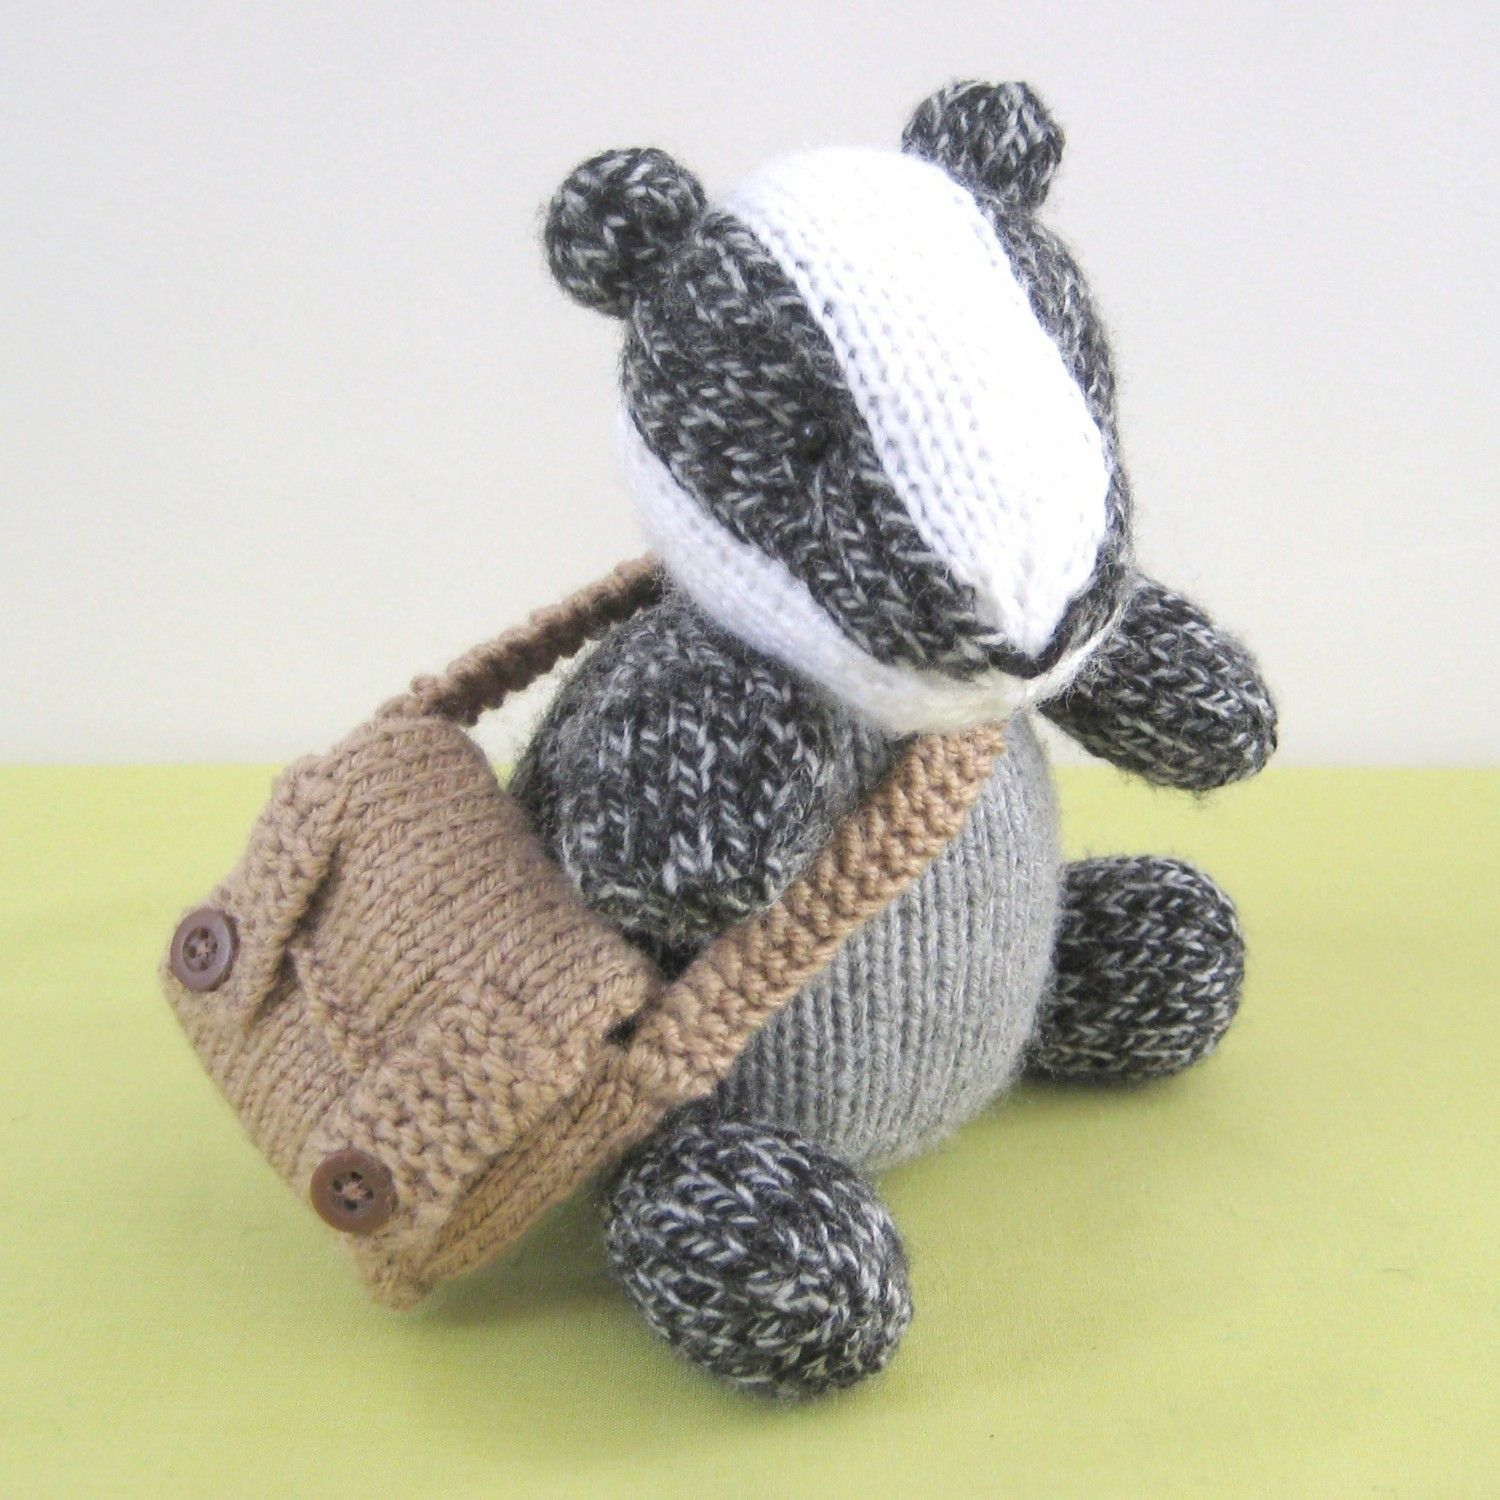 Brompton Badger Toy Knitting Pattern Knitting Patterns Toy And